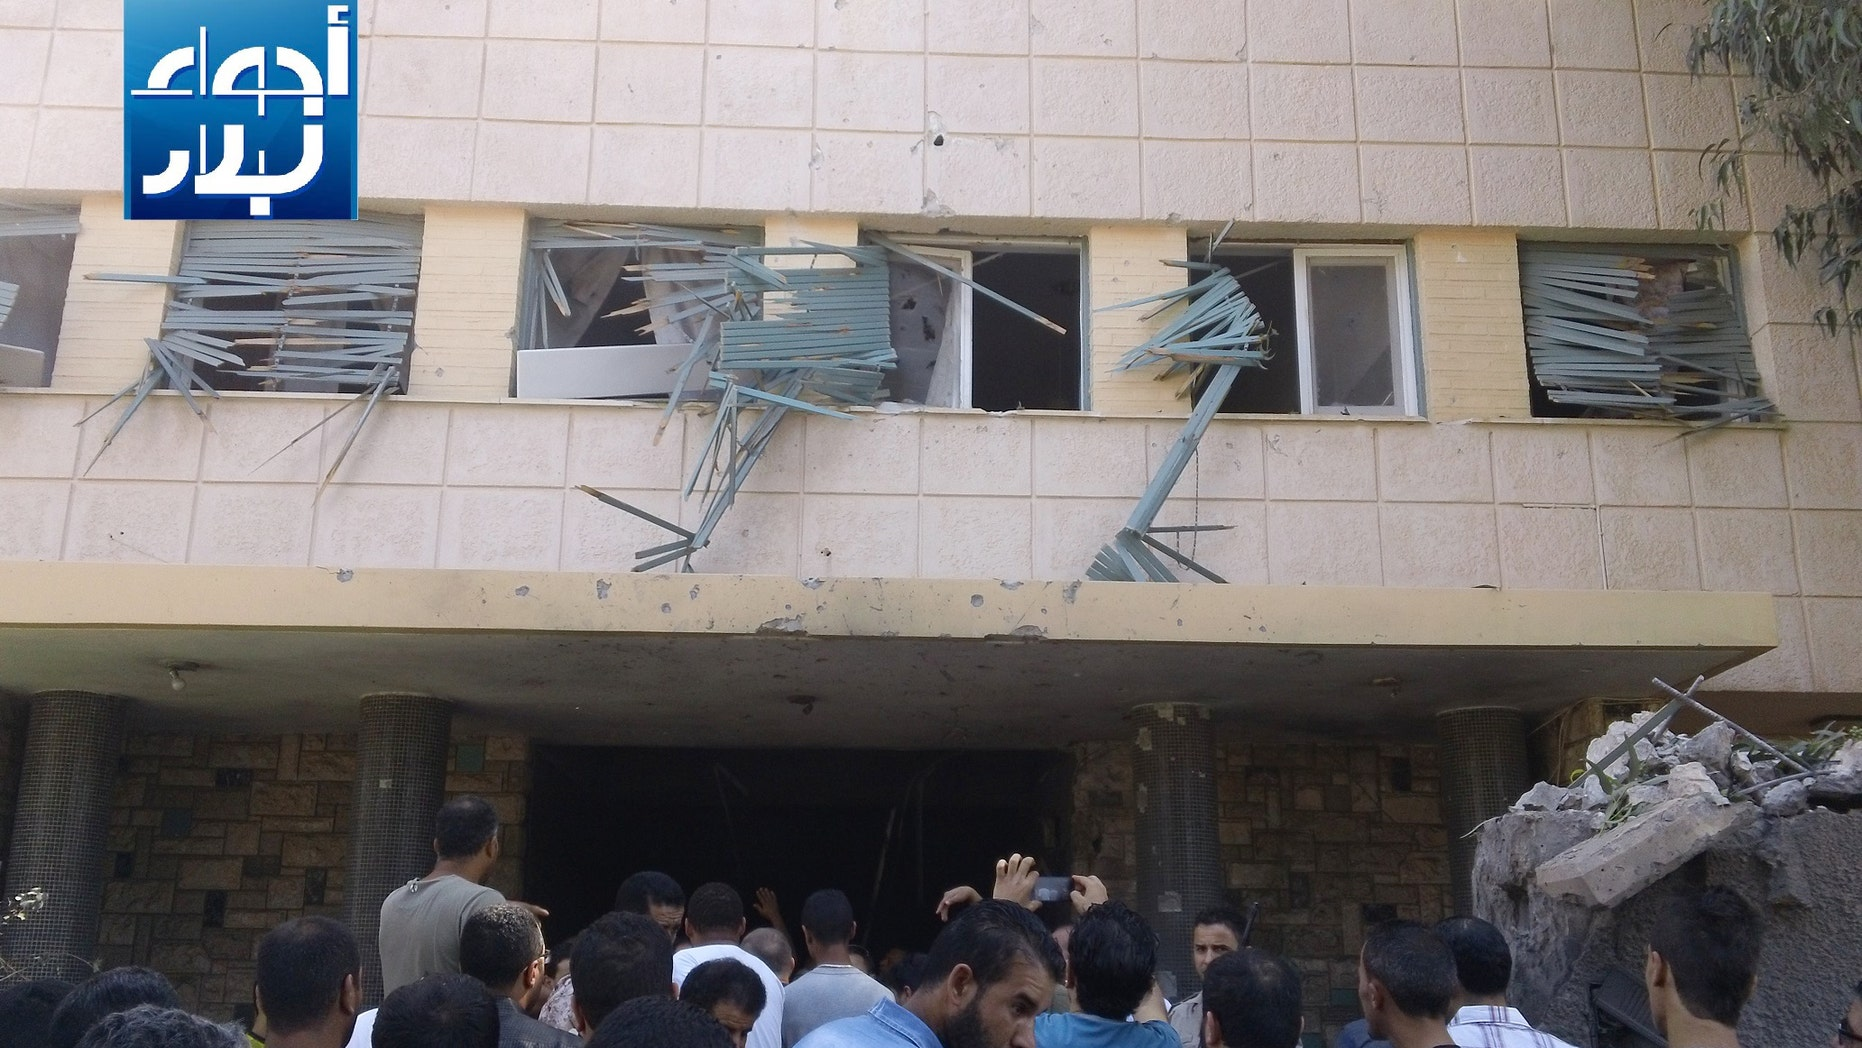 Oct. 11, 2013 - Aftermath of a car bomb attack on a building housing the Swedish and Finnish consulates in Benghazi, Libya, badly damaging it but causing no casualties, (Ajwaa Leblad News)